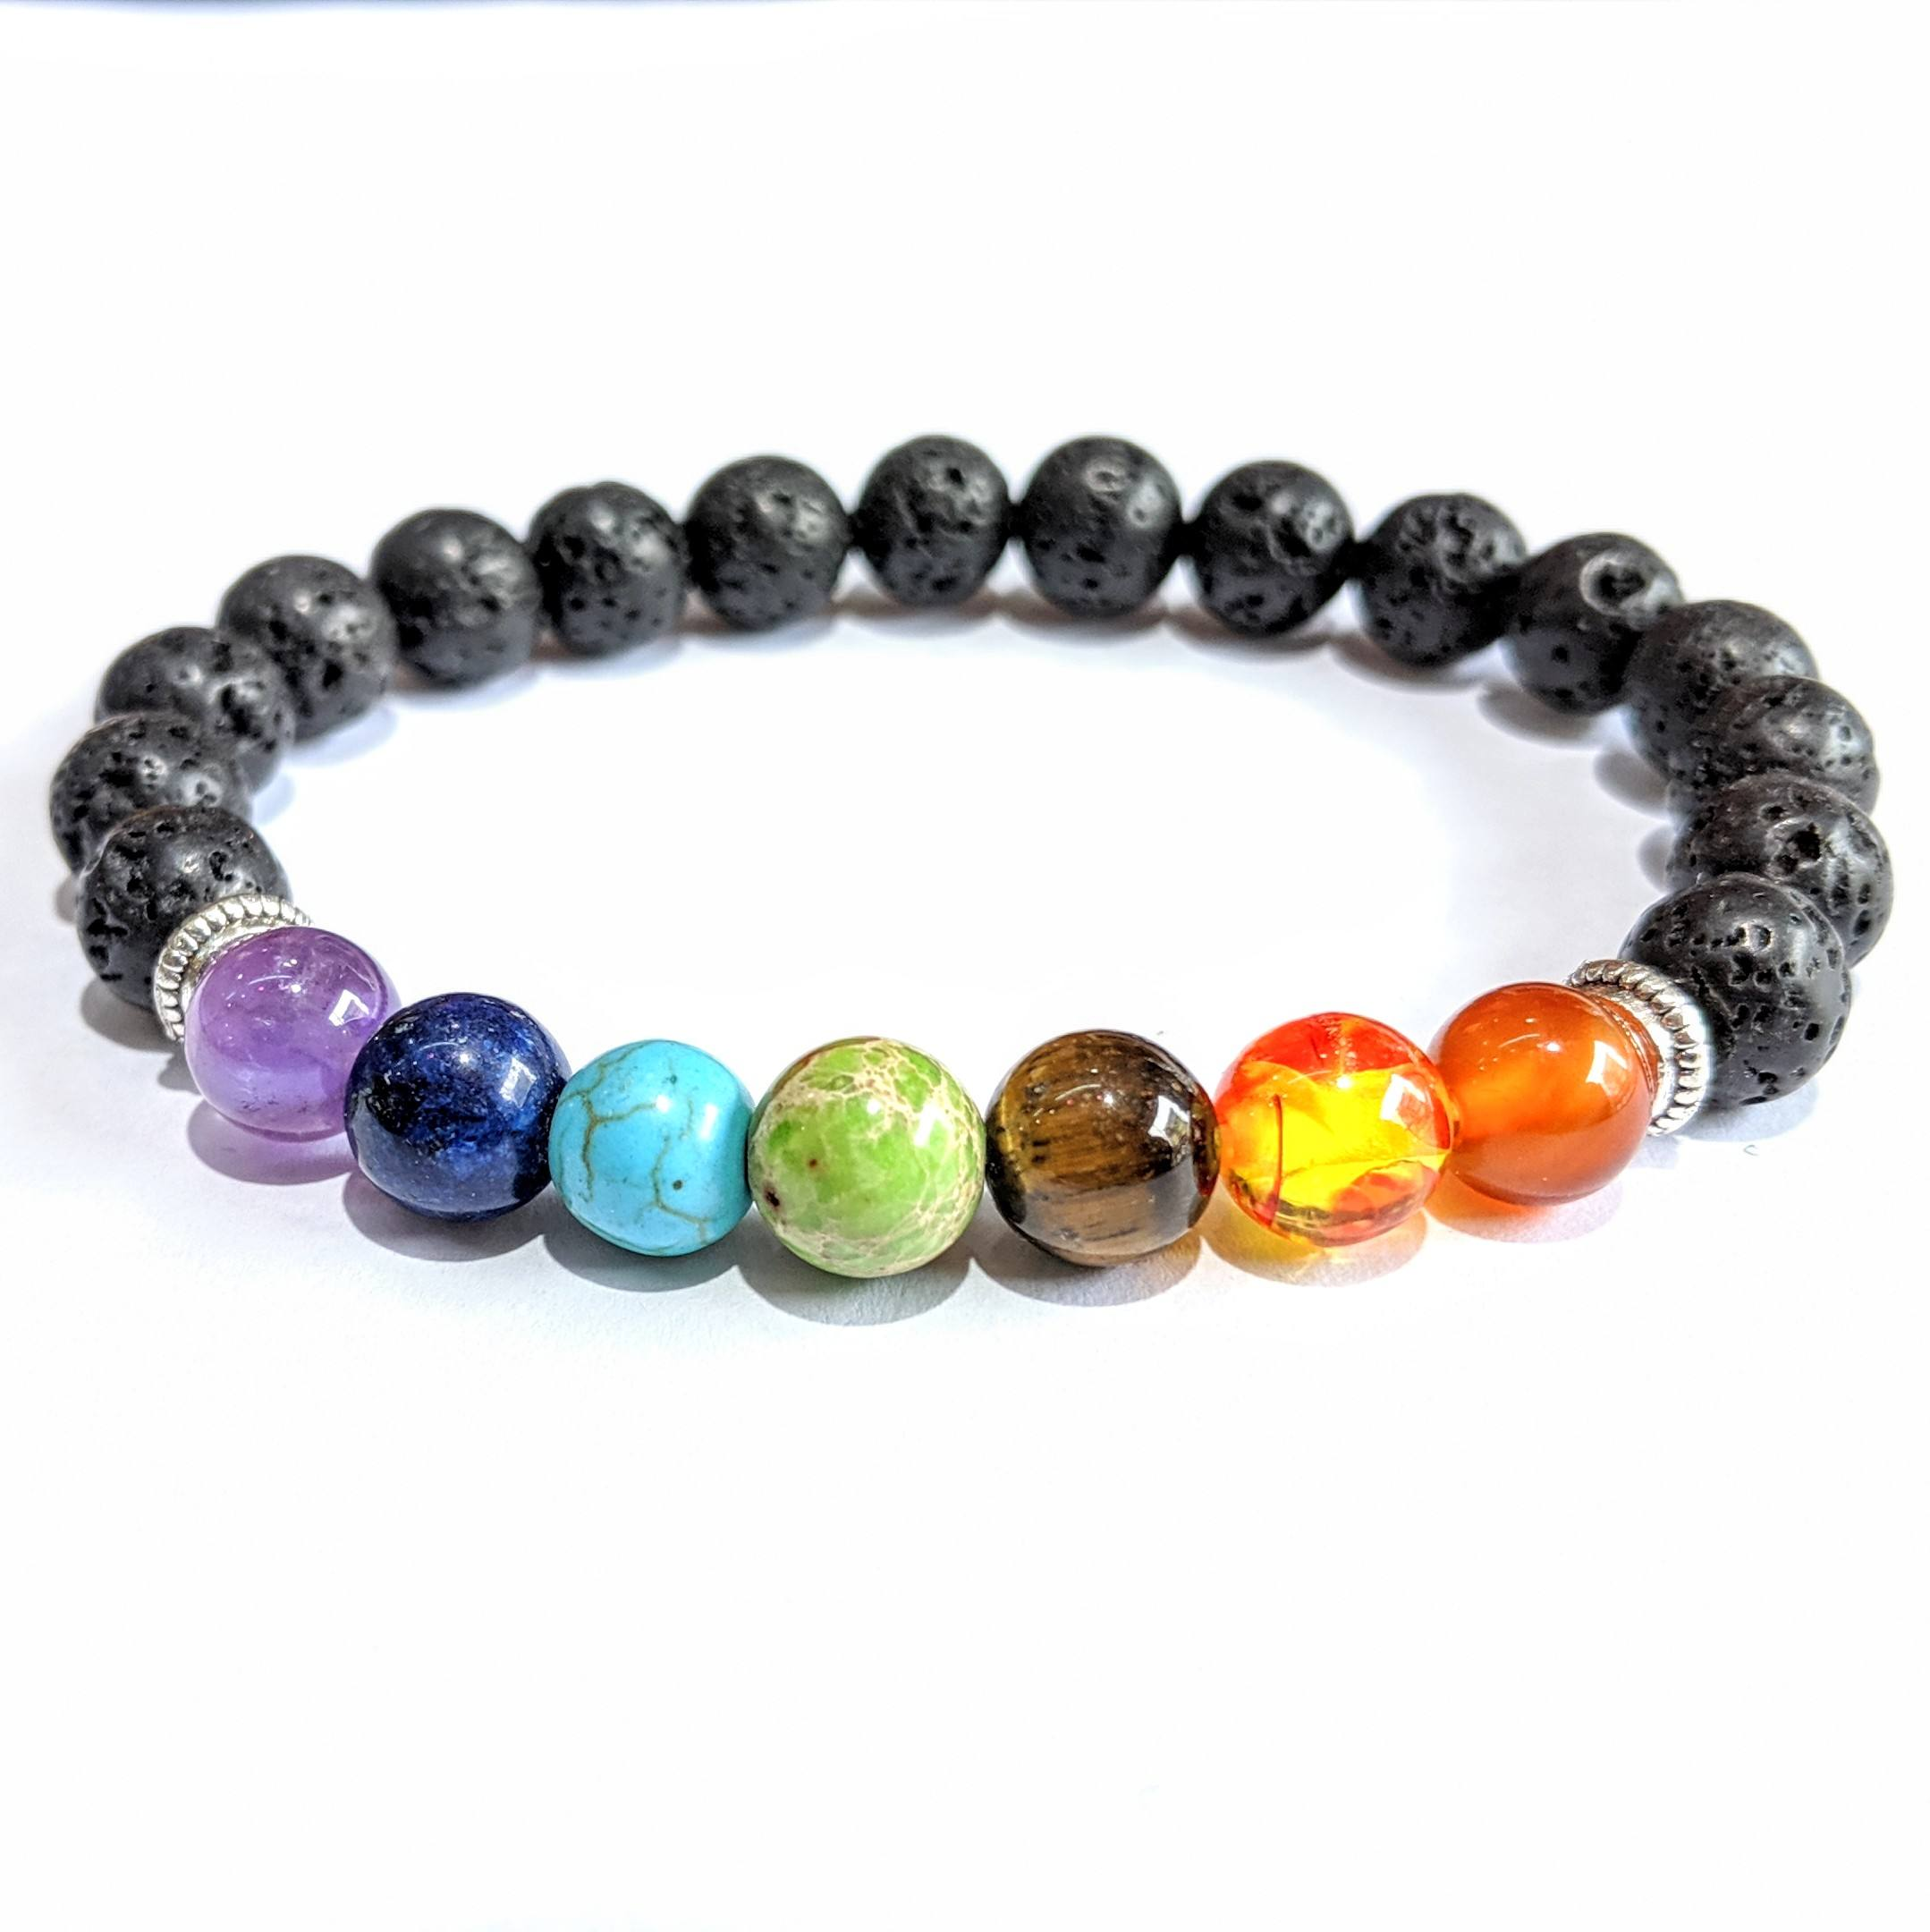 Wholesale Cheap 7 Chakra Bracelet in Bulk Supplier Handmade Elastic Bracelet 8mm Round Chakra Bracelet with Black Lava